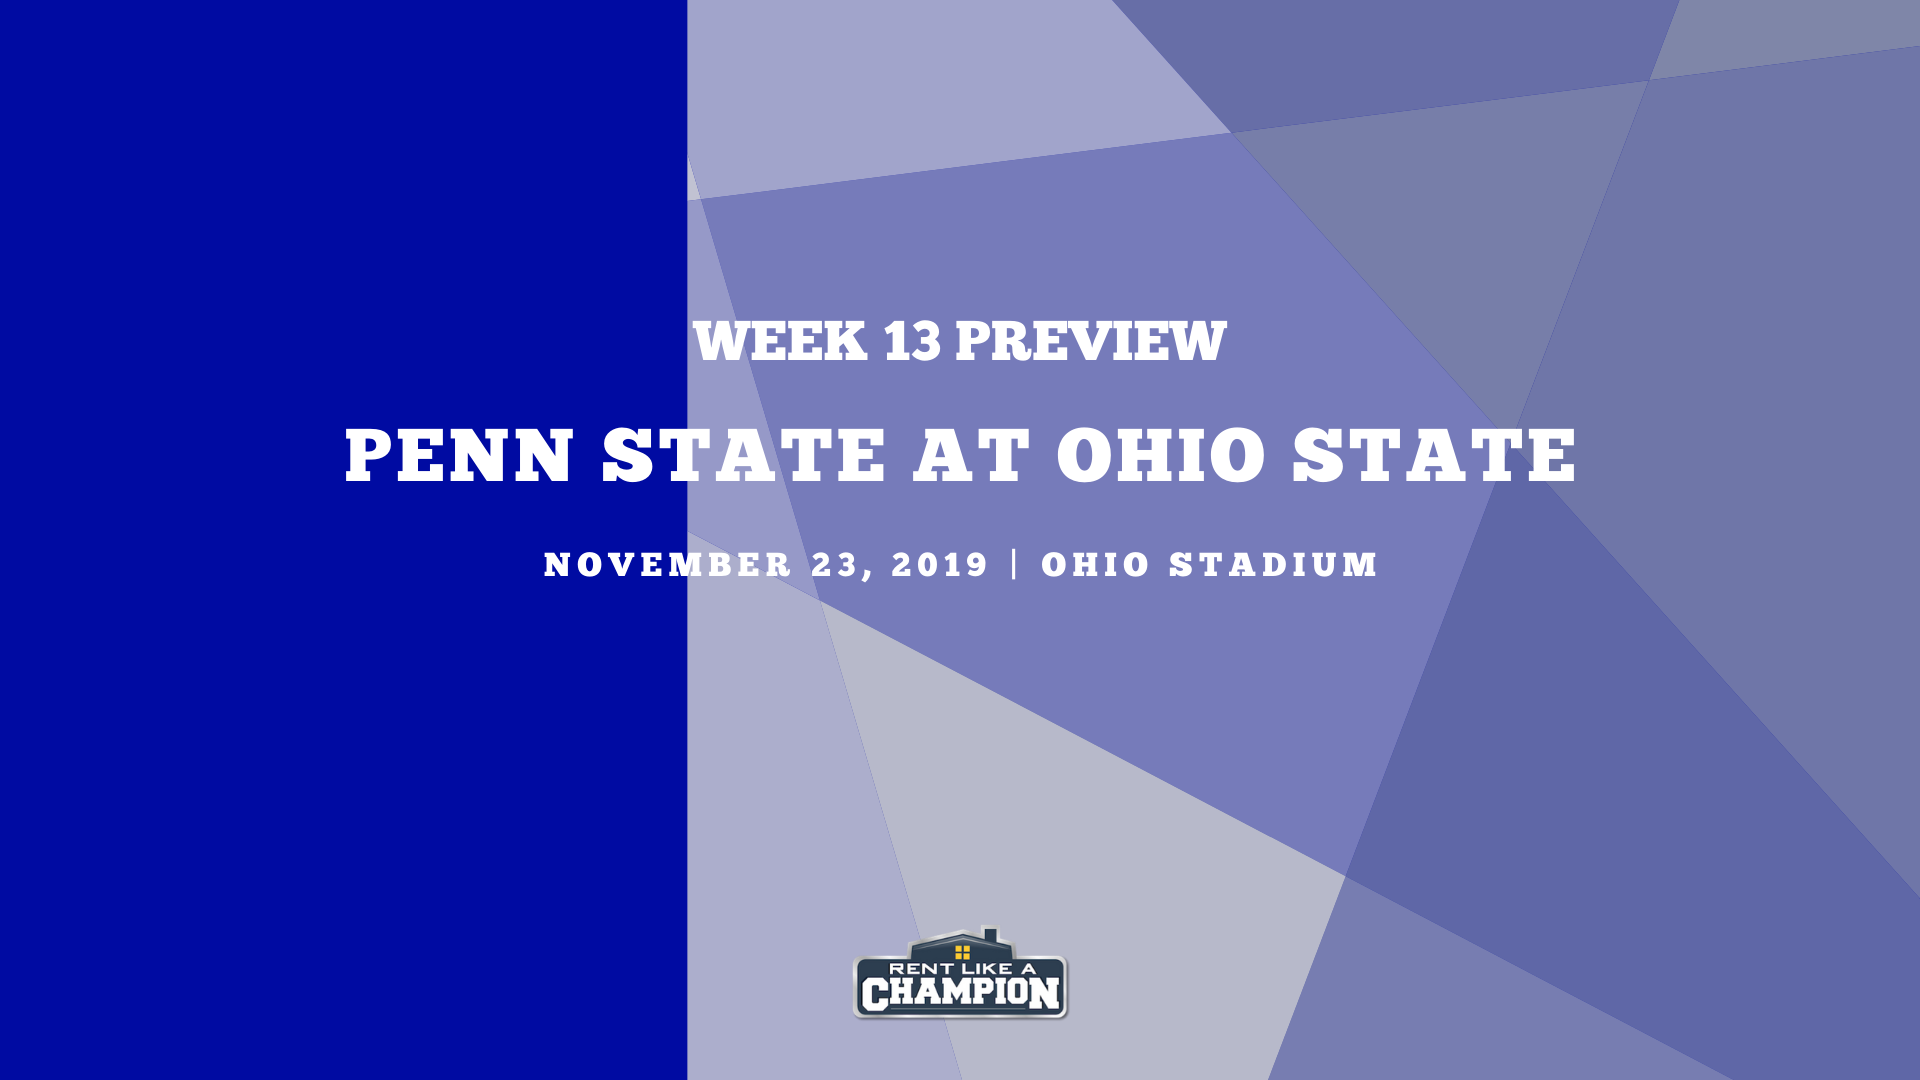 Penn State Game Preview Template (9)